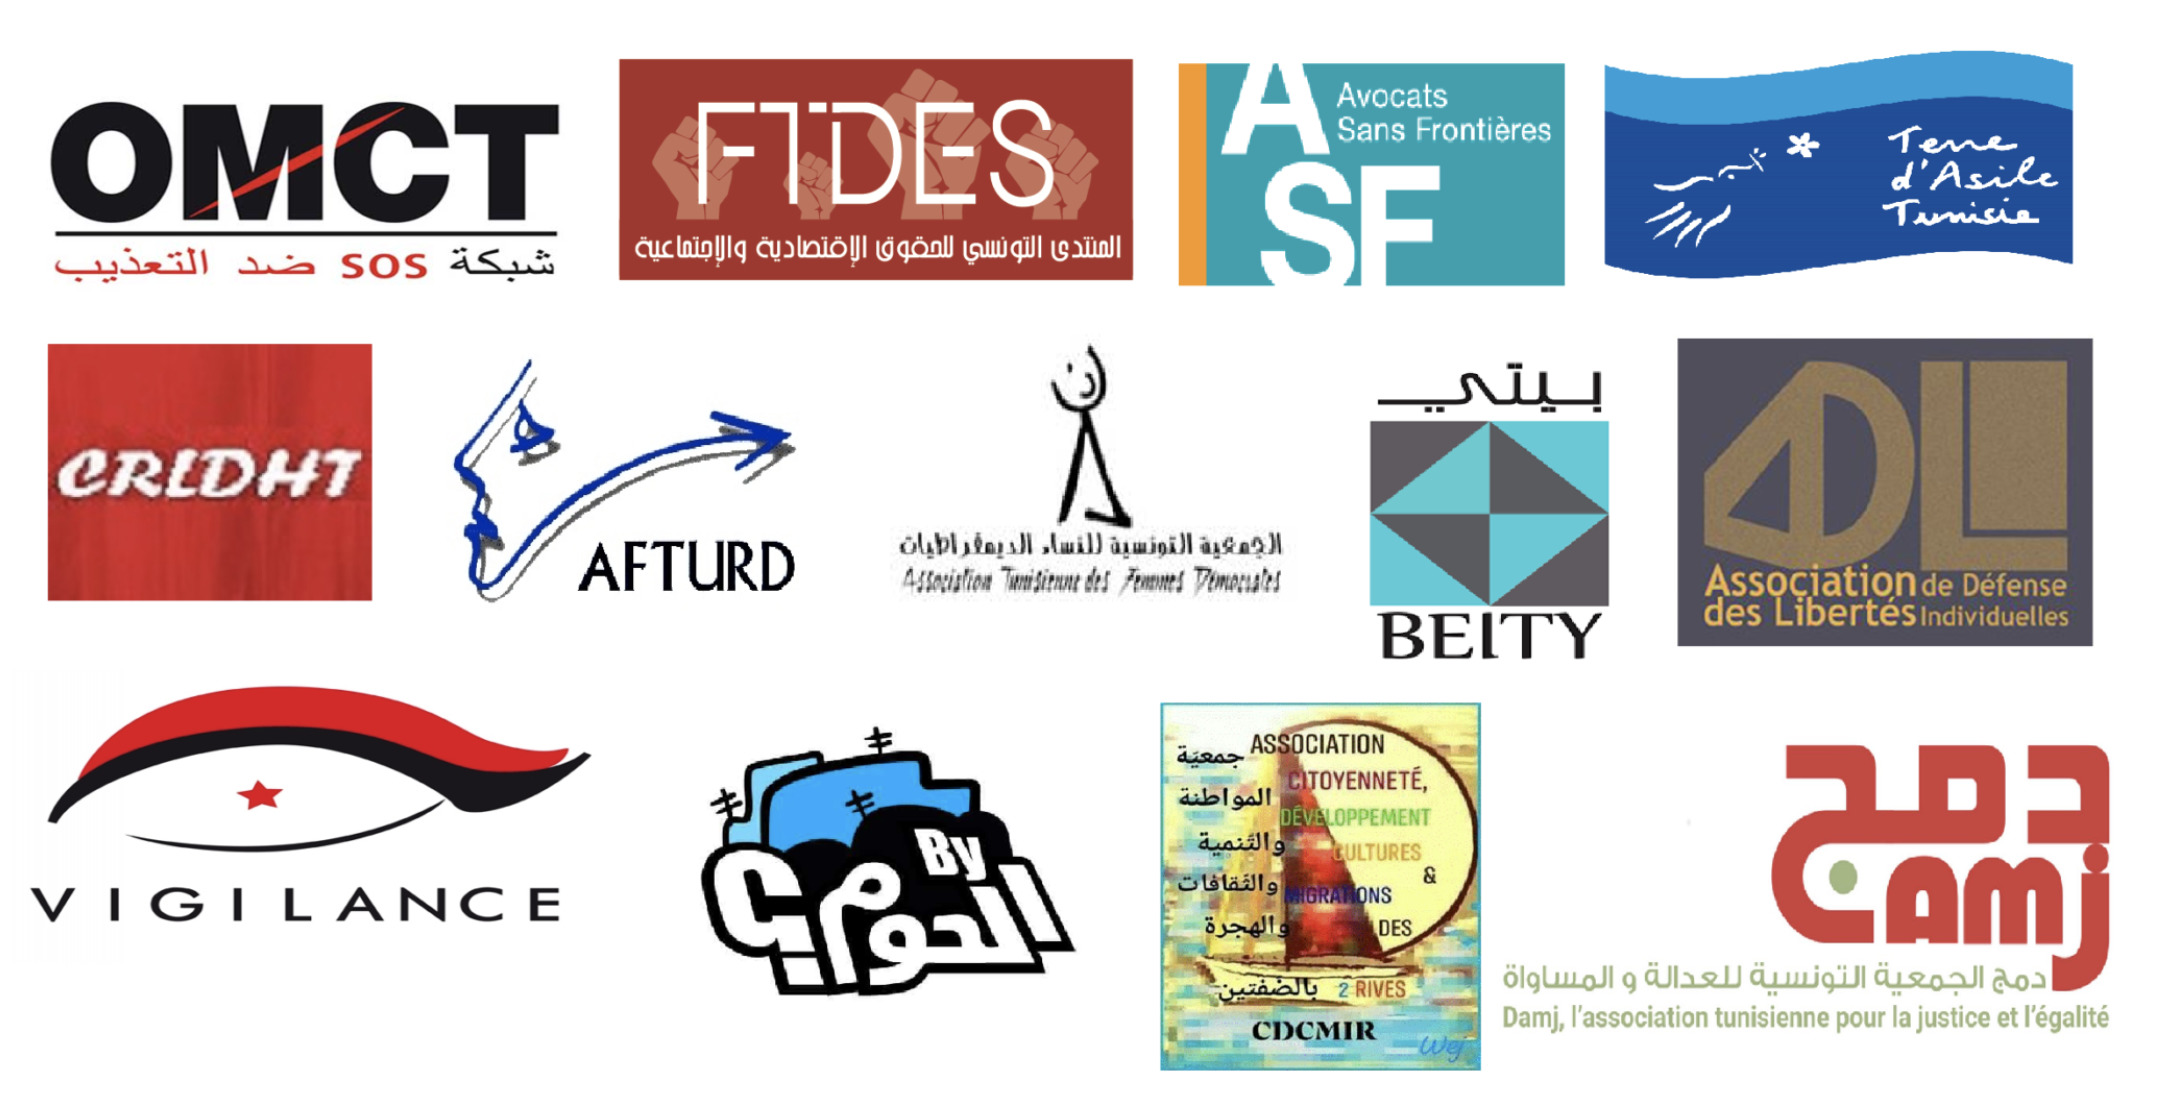 Tunisian civil society organisations have called on authorities to clarify the legal basis for detainees' continued detention (FTDES, 29 April 2020).